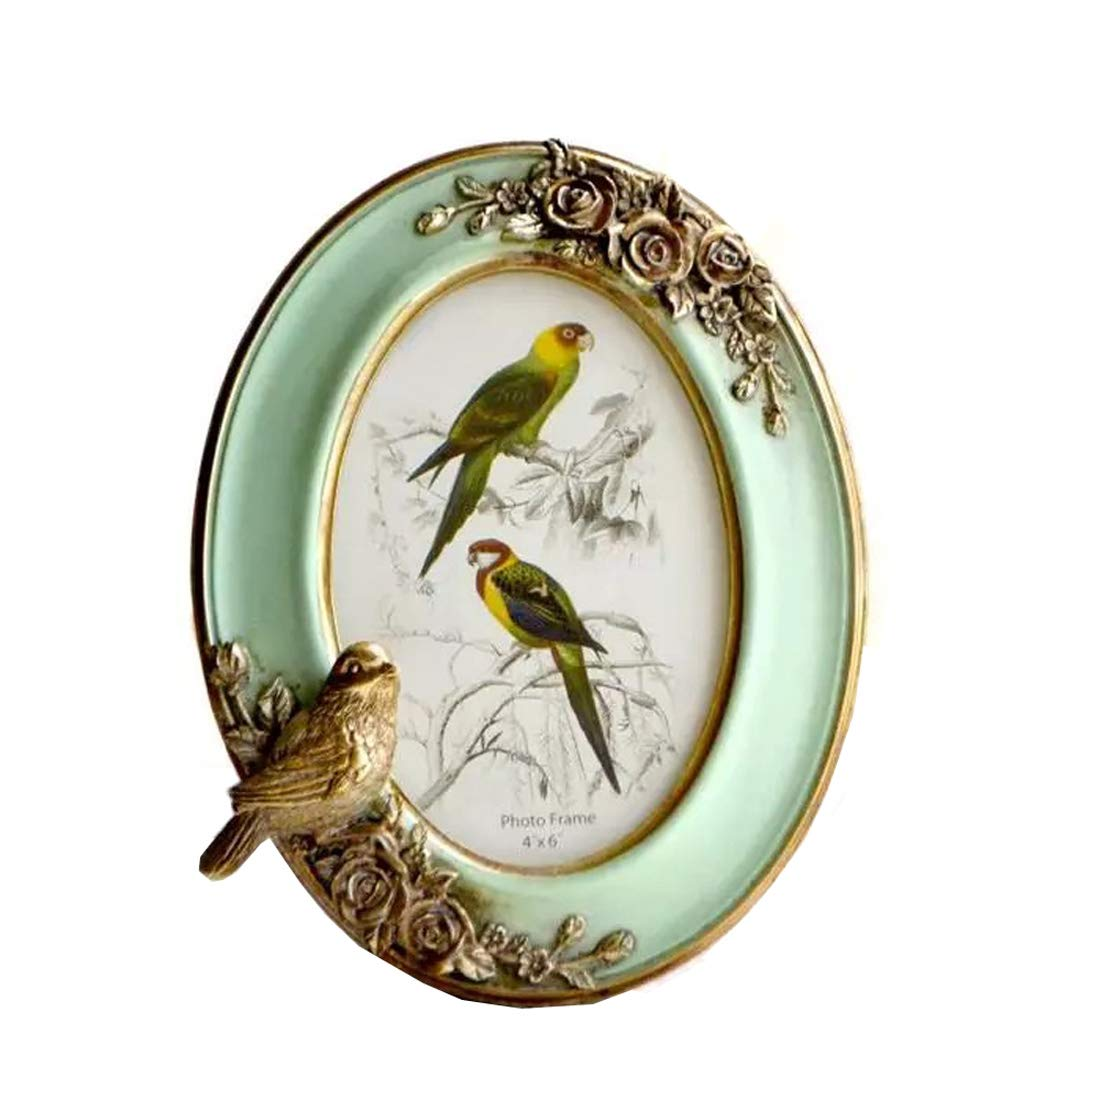 SIKOO Vintage Picture Frame 4x6 Oval Tabletop and Wall Mounting Photo Frame for Home Decoration, Green (Bird)